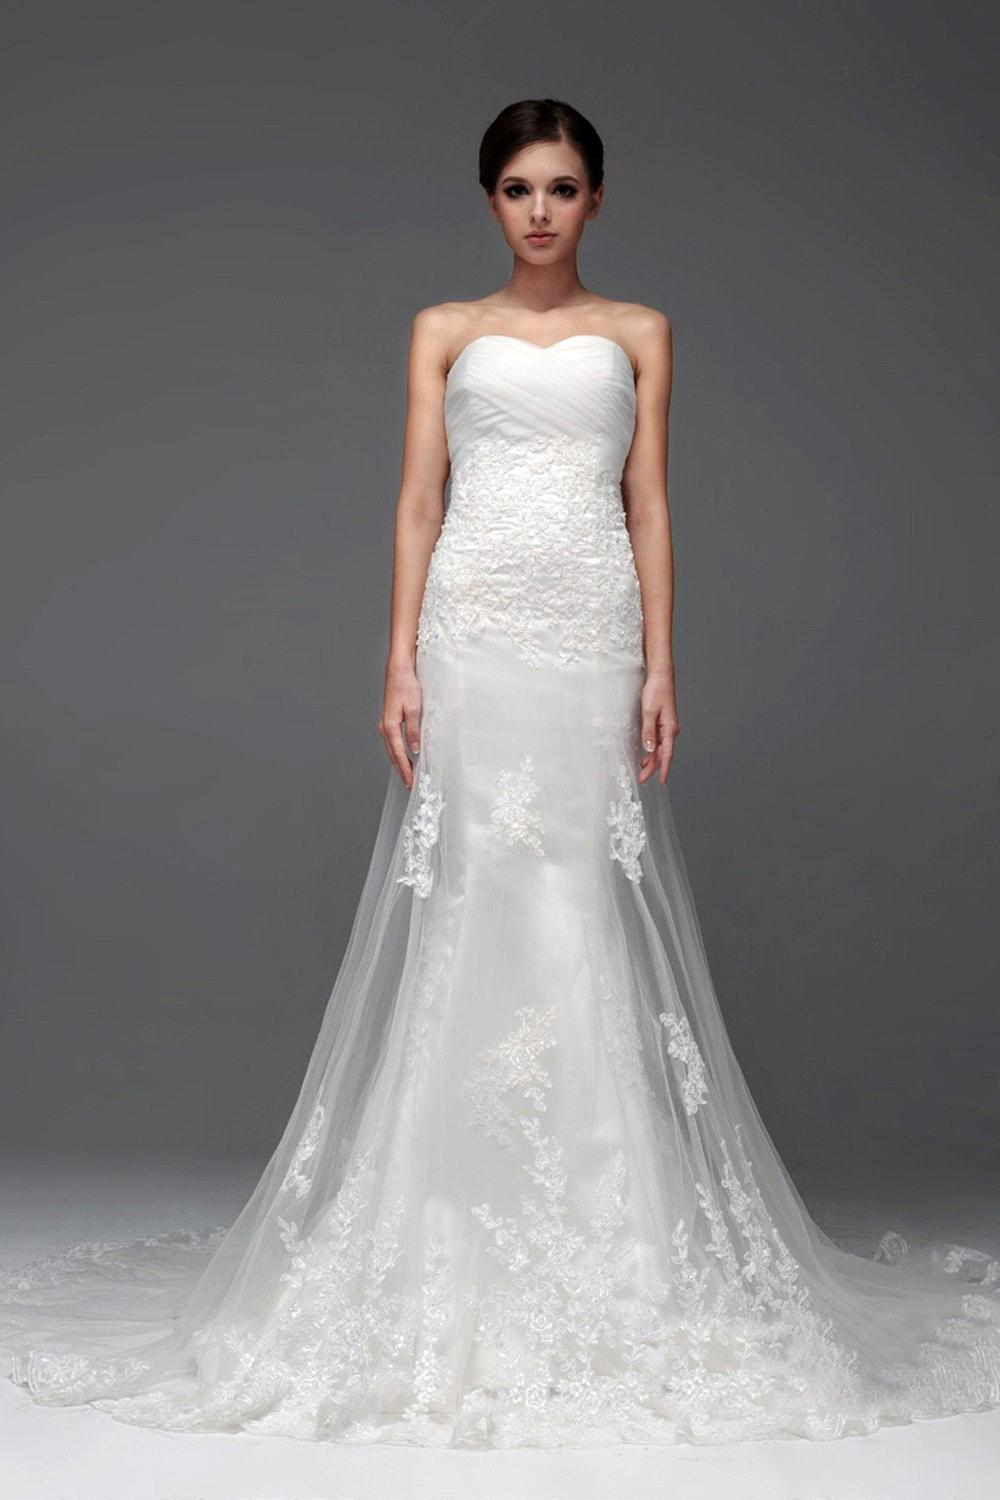 no train wedding dress David Tutera Collection Sleeveless allover lace and tulle wedding dress sheath featuring scalloped illusion